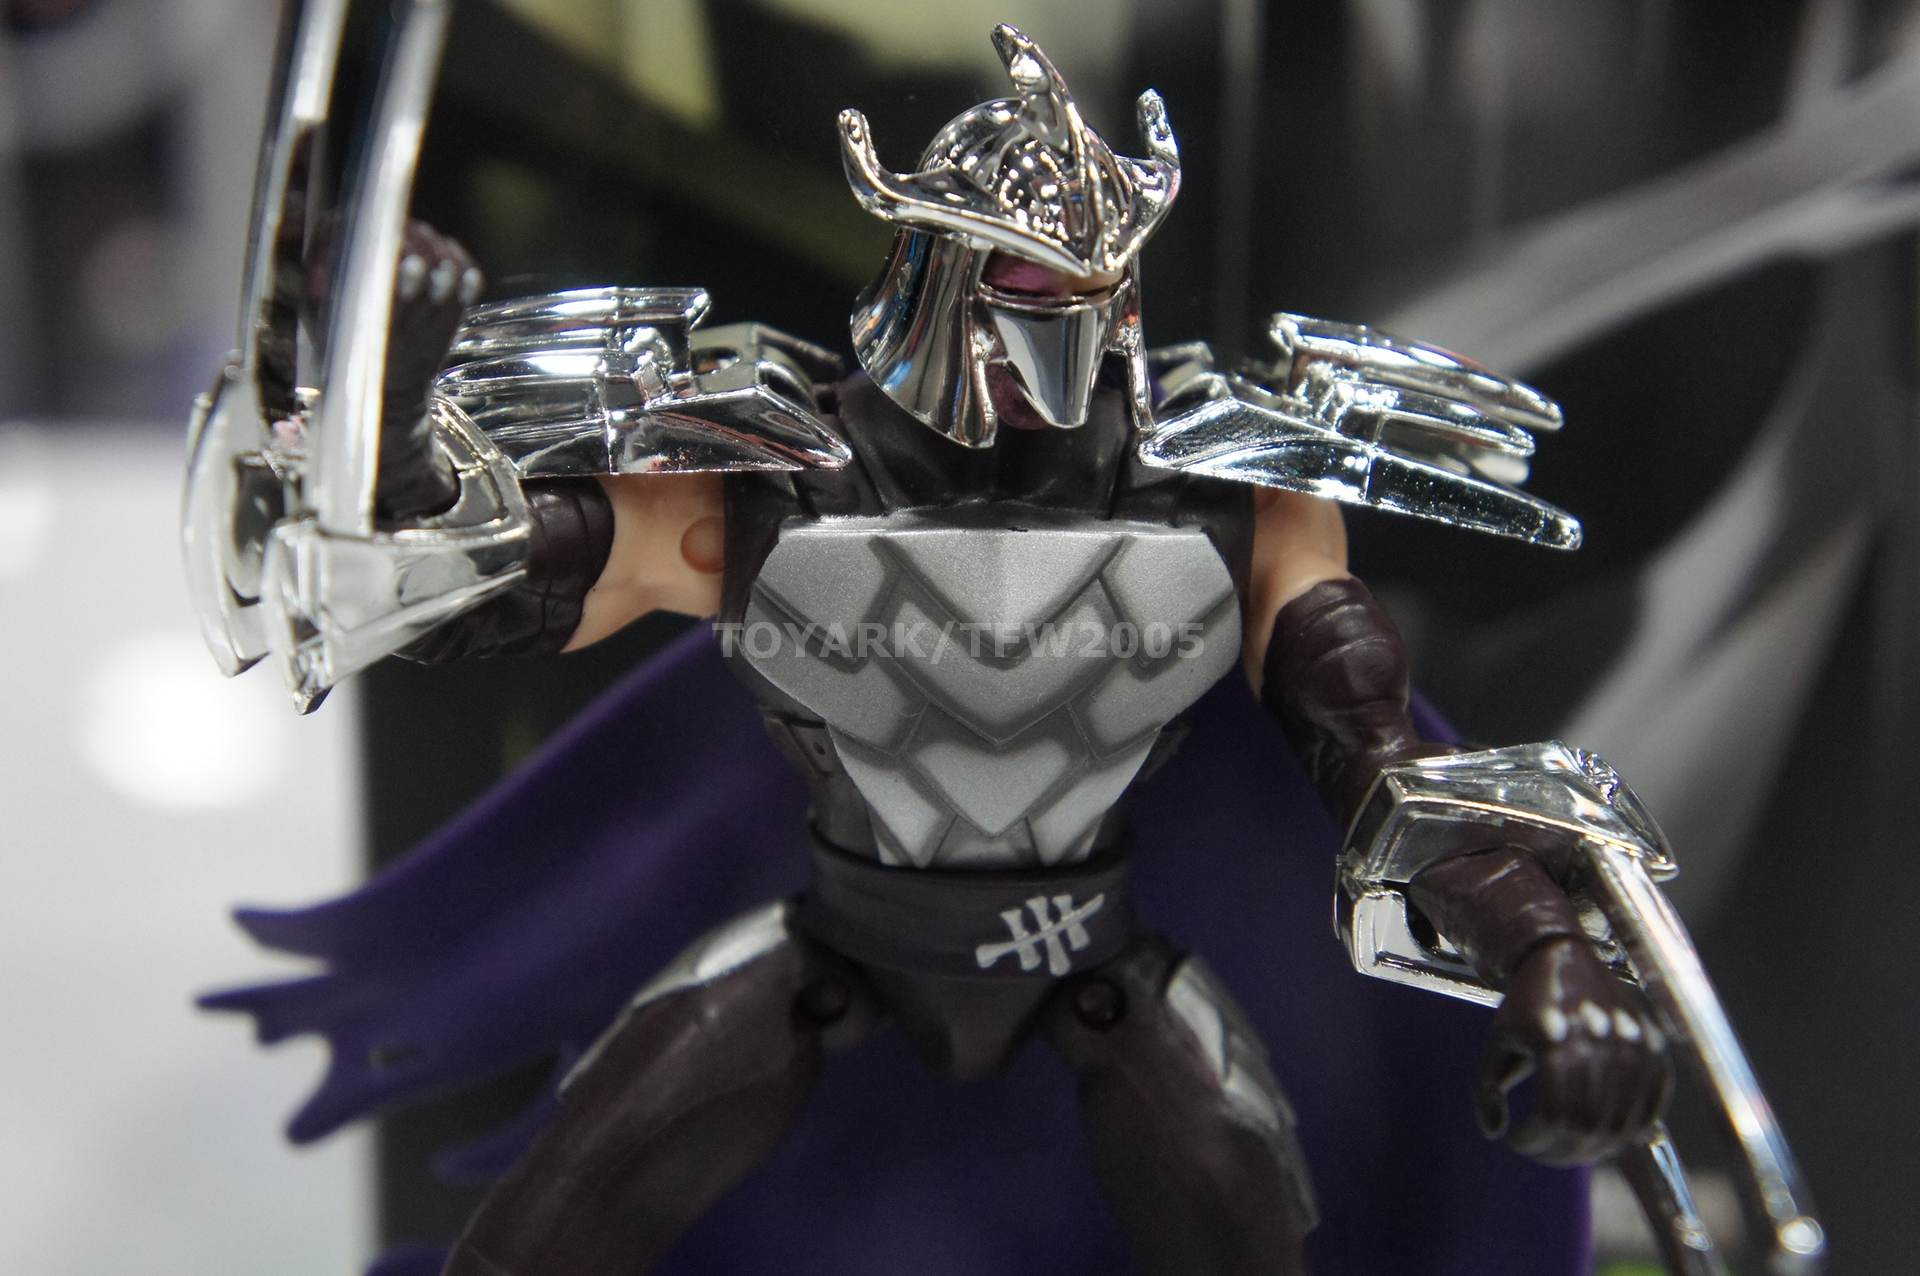 Sdcc 2013 Exclusive Tmnt Shredder Now Available To Public The